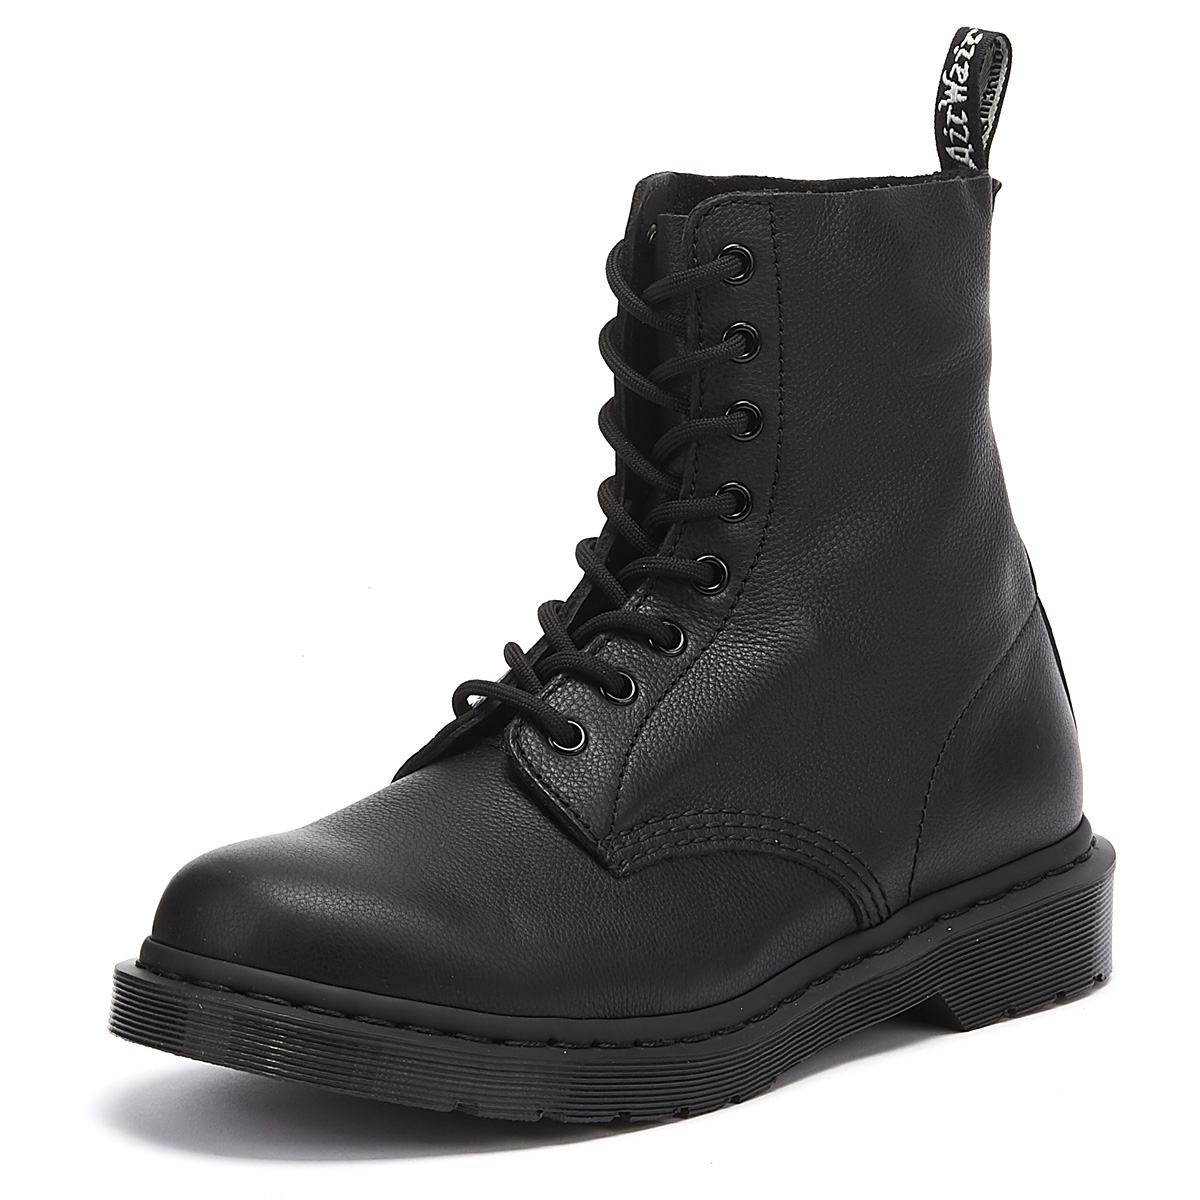 696275733805 Details about Dr. Martens 1460 Pascal Virginia Womens Mono Black Boots  Winter Leather Shoes